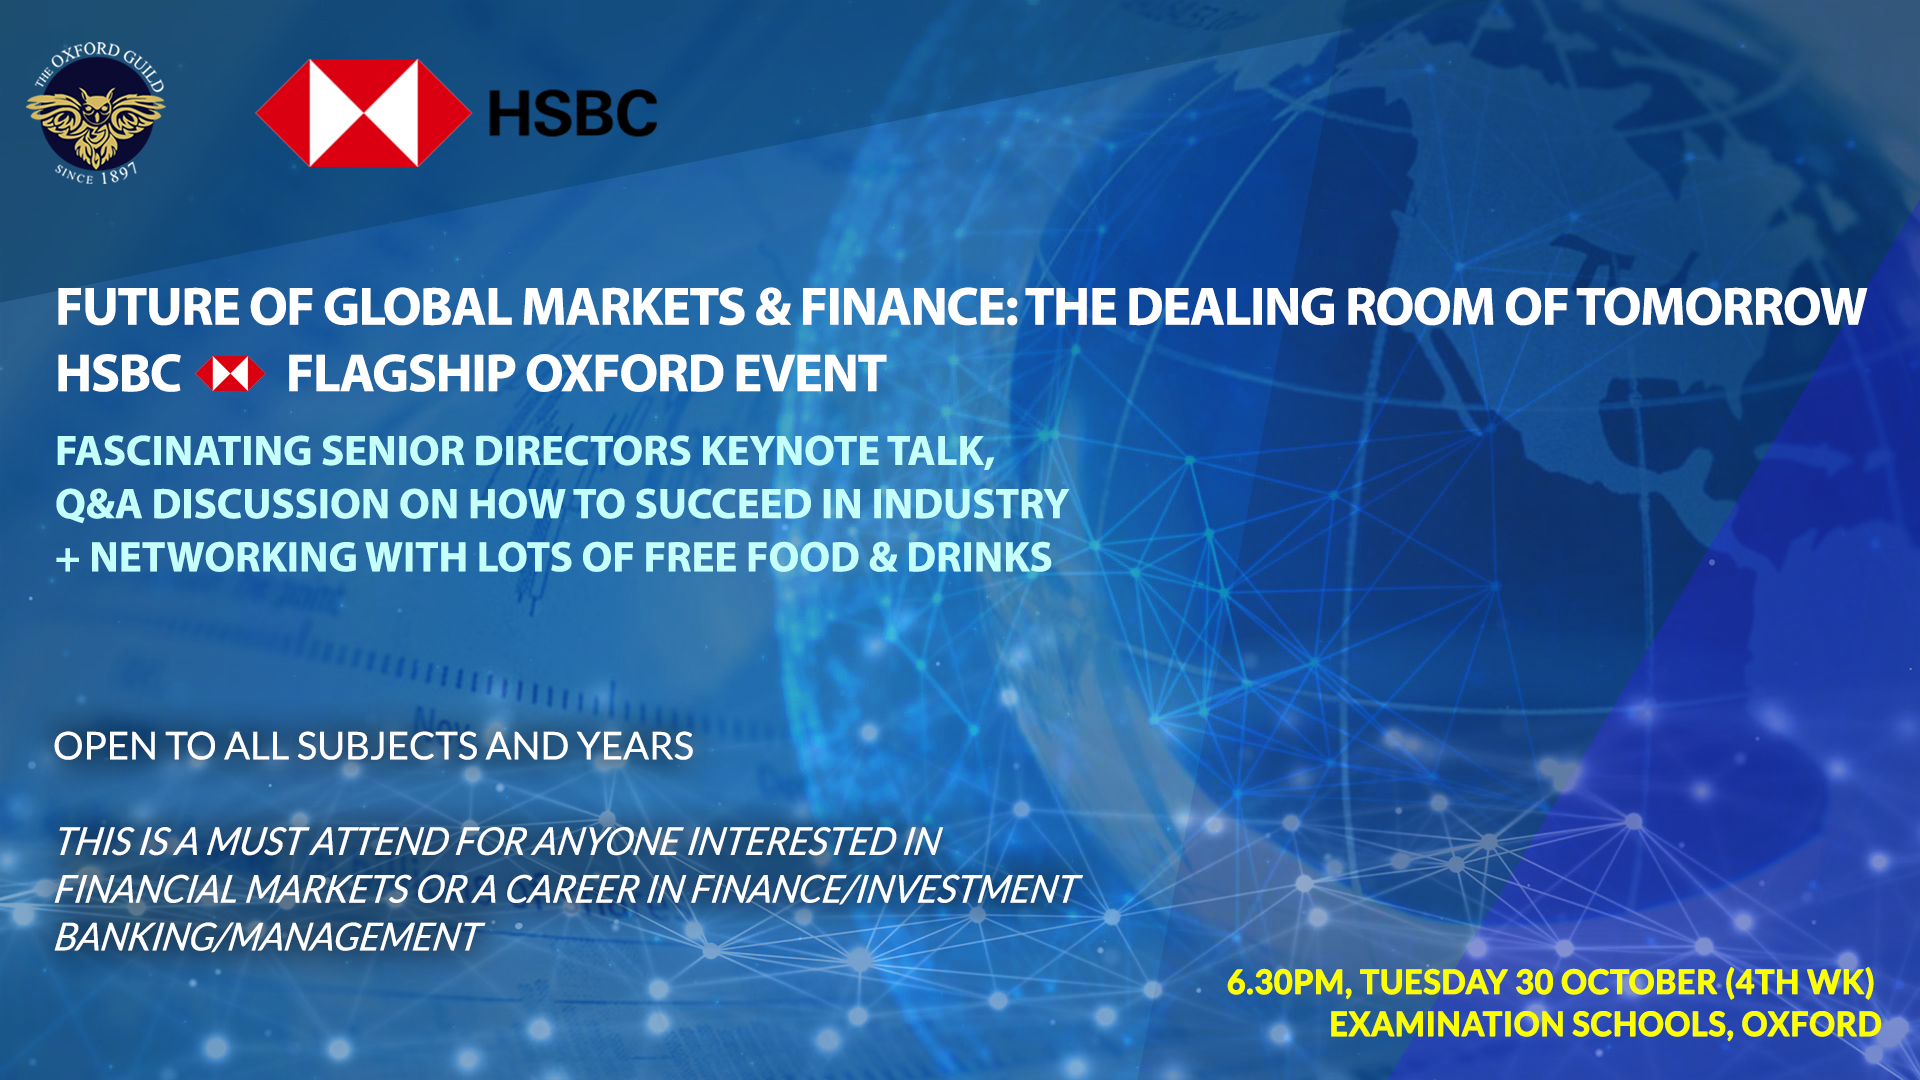 Future of Global Markets & Finance: HSBC Flagship Event – The